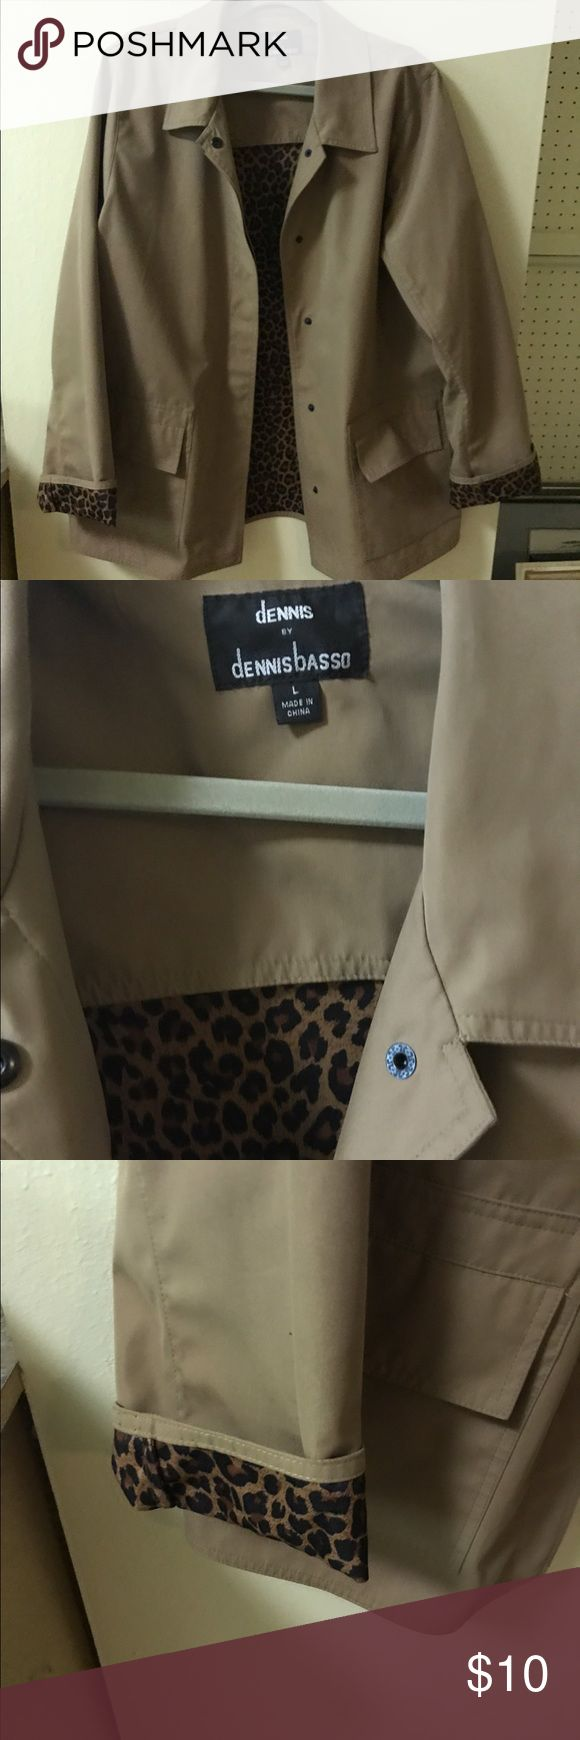 Dennis Basso Coat NEVER WORN - excellent condition - purchased from QVC (received as a gift) cute cheetah print lining- snaps up the front Dennis Basso Jackets & Coats Trench Coats